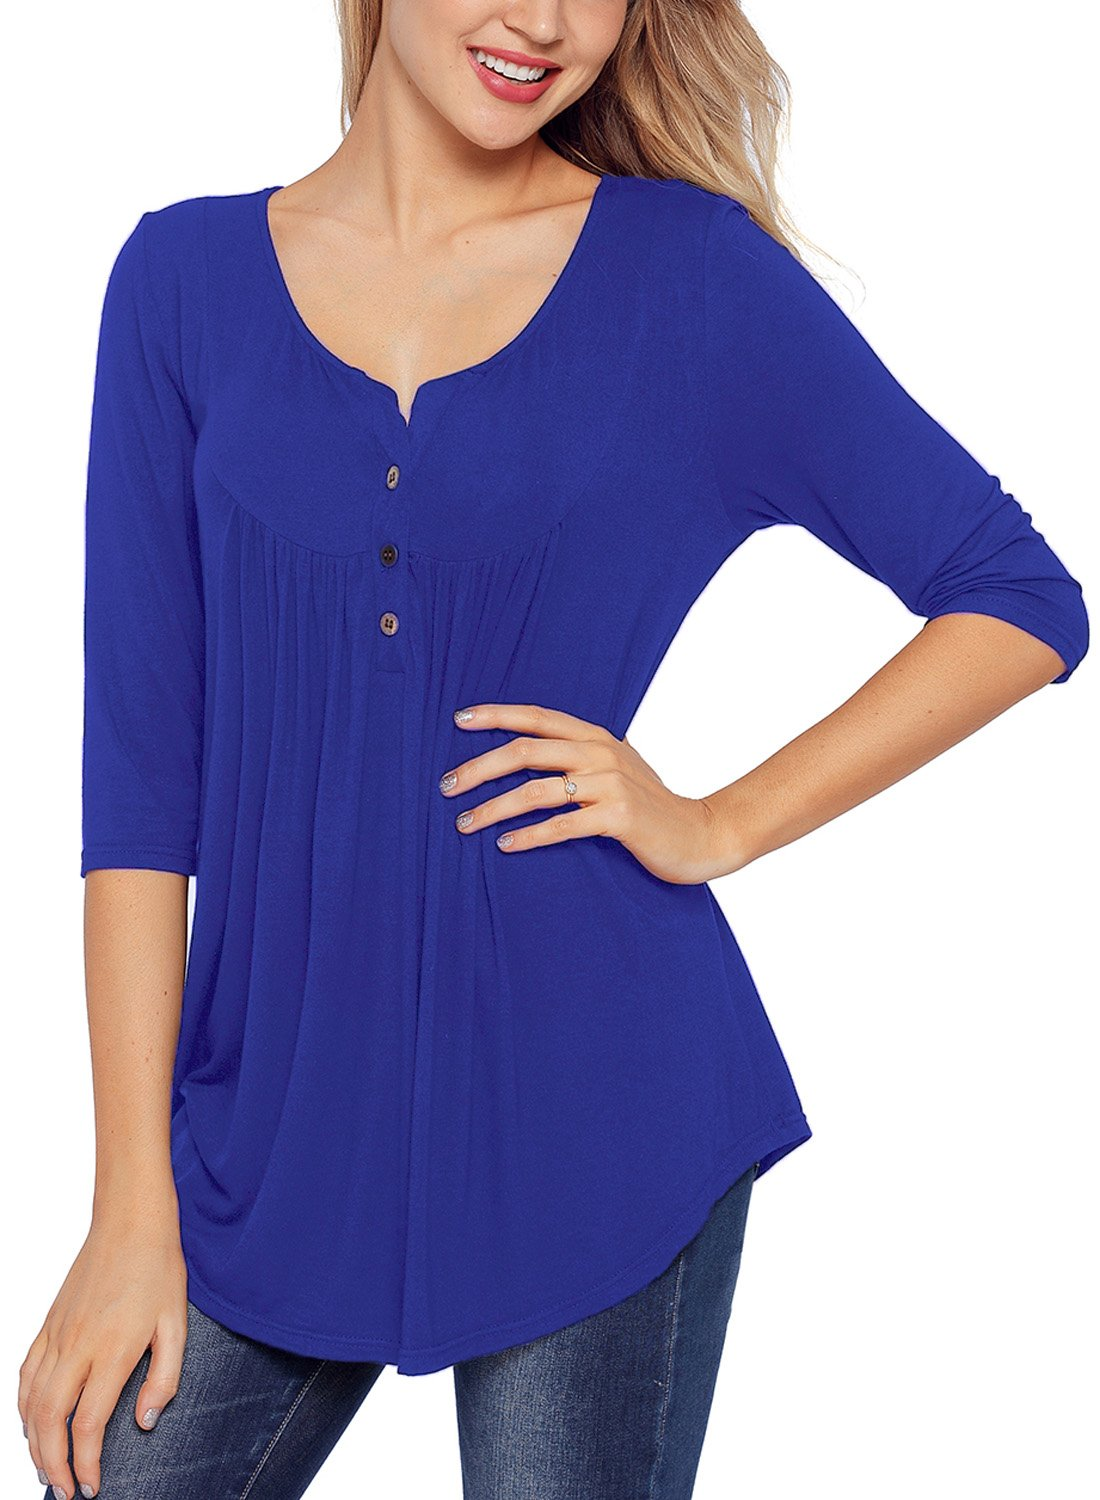 FARYSAYS Women's Casual Tee Shirts V Neck 3/4 Sleeve Botton up Loose Fits Tunic Tops Blouses Blue X-Large